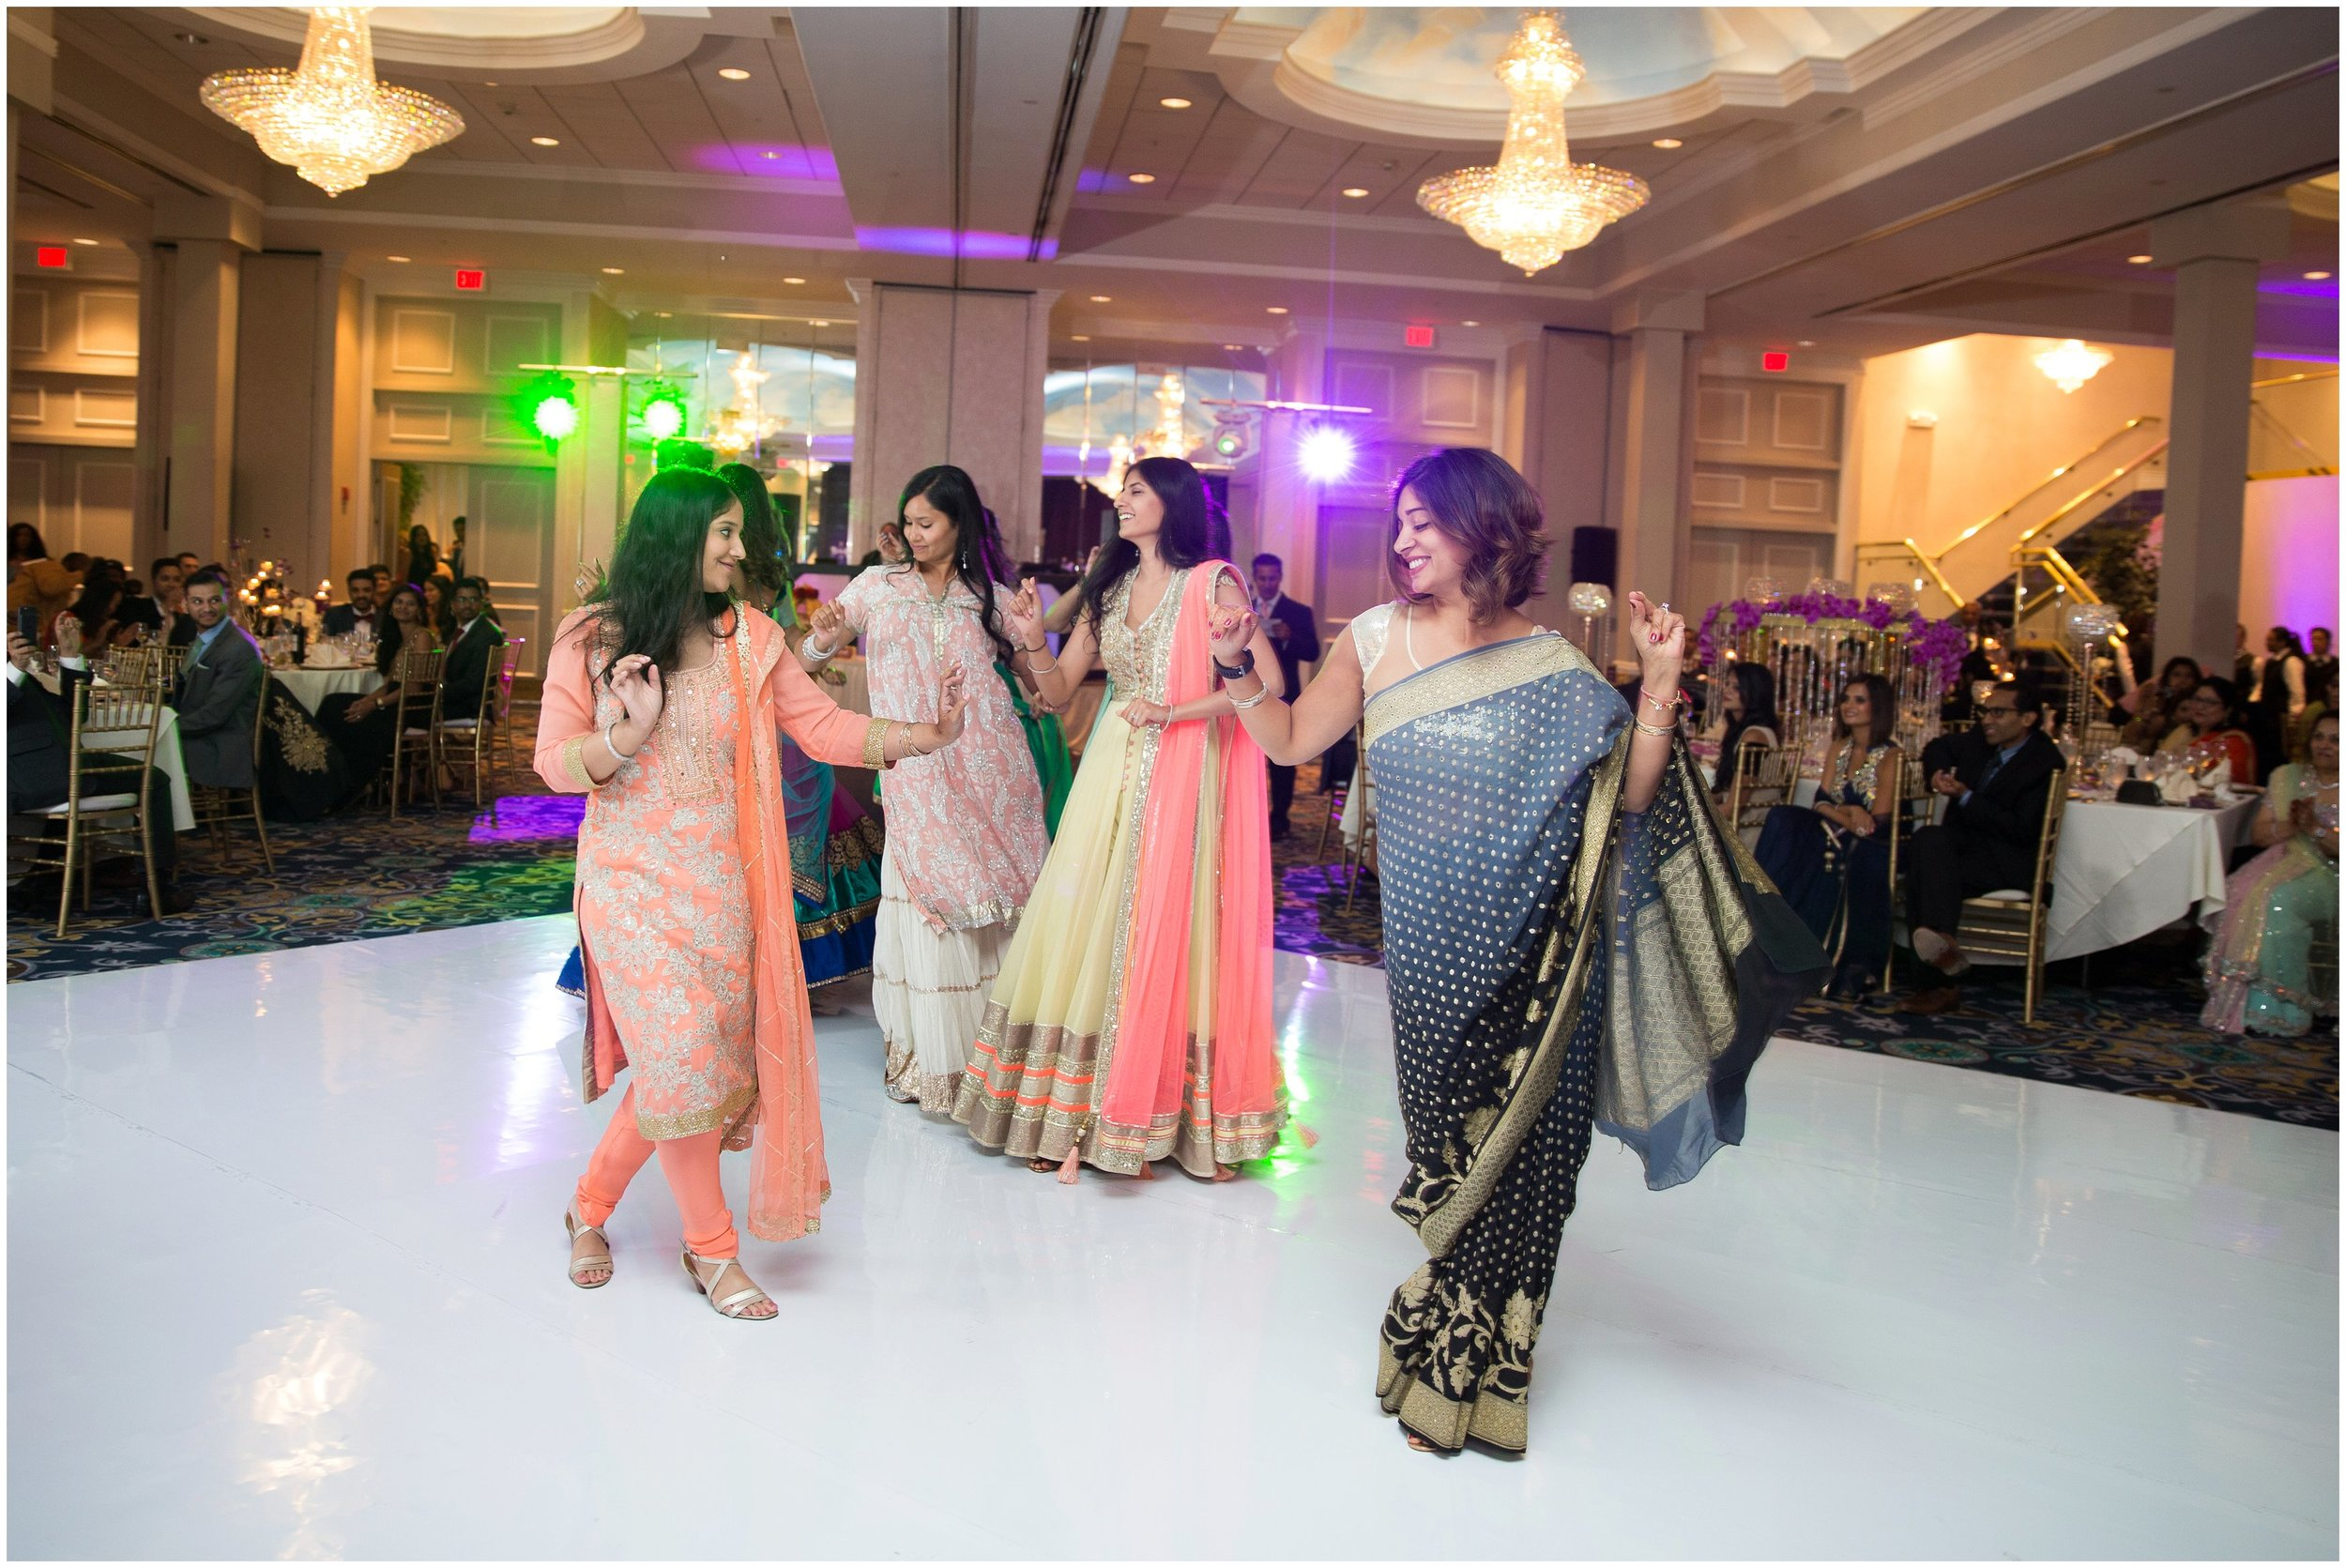 Le Cape Weddings - South Asian Wedding in Illinois - Tanvi and Anshul -1891_LuxuryDestinationPhotographer.jpg